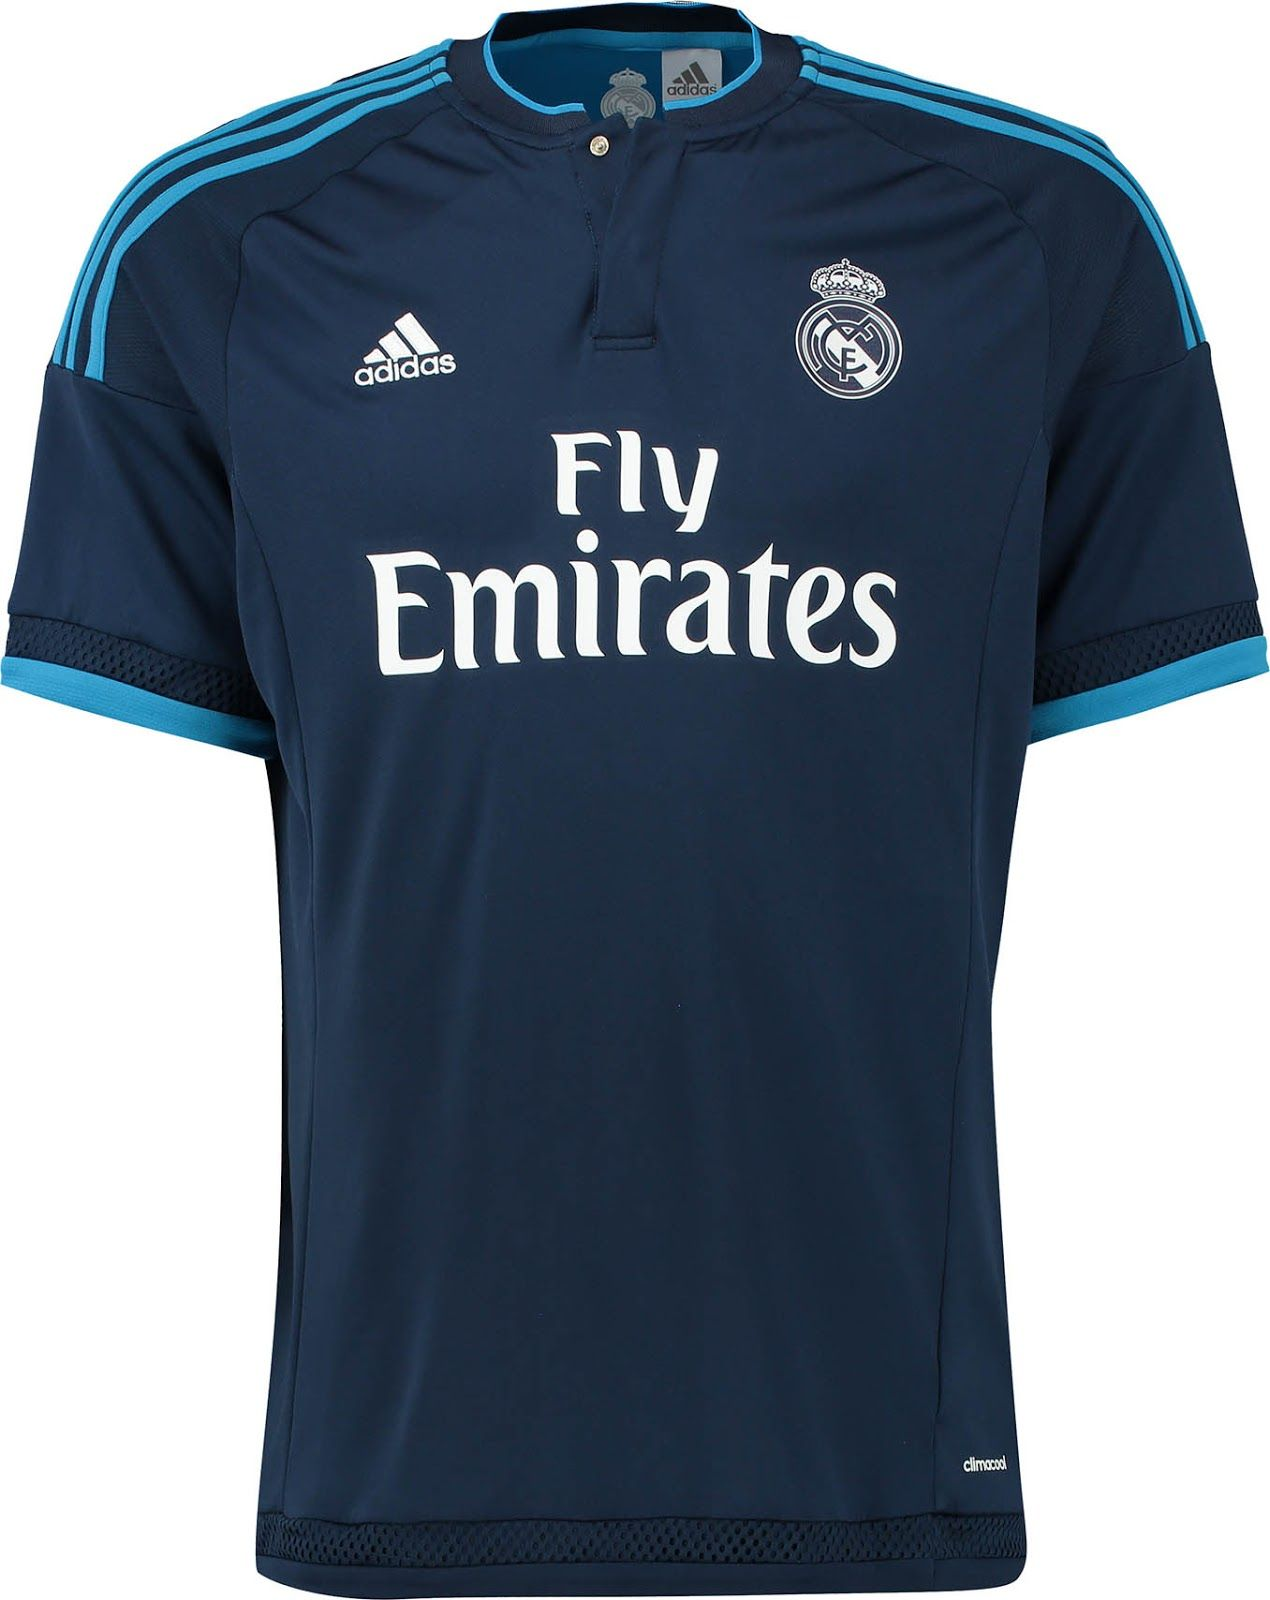 55e7d8c5a8c Real Madrid adizero Third Shirt 2015 16